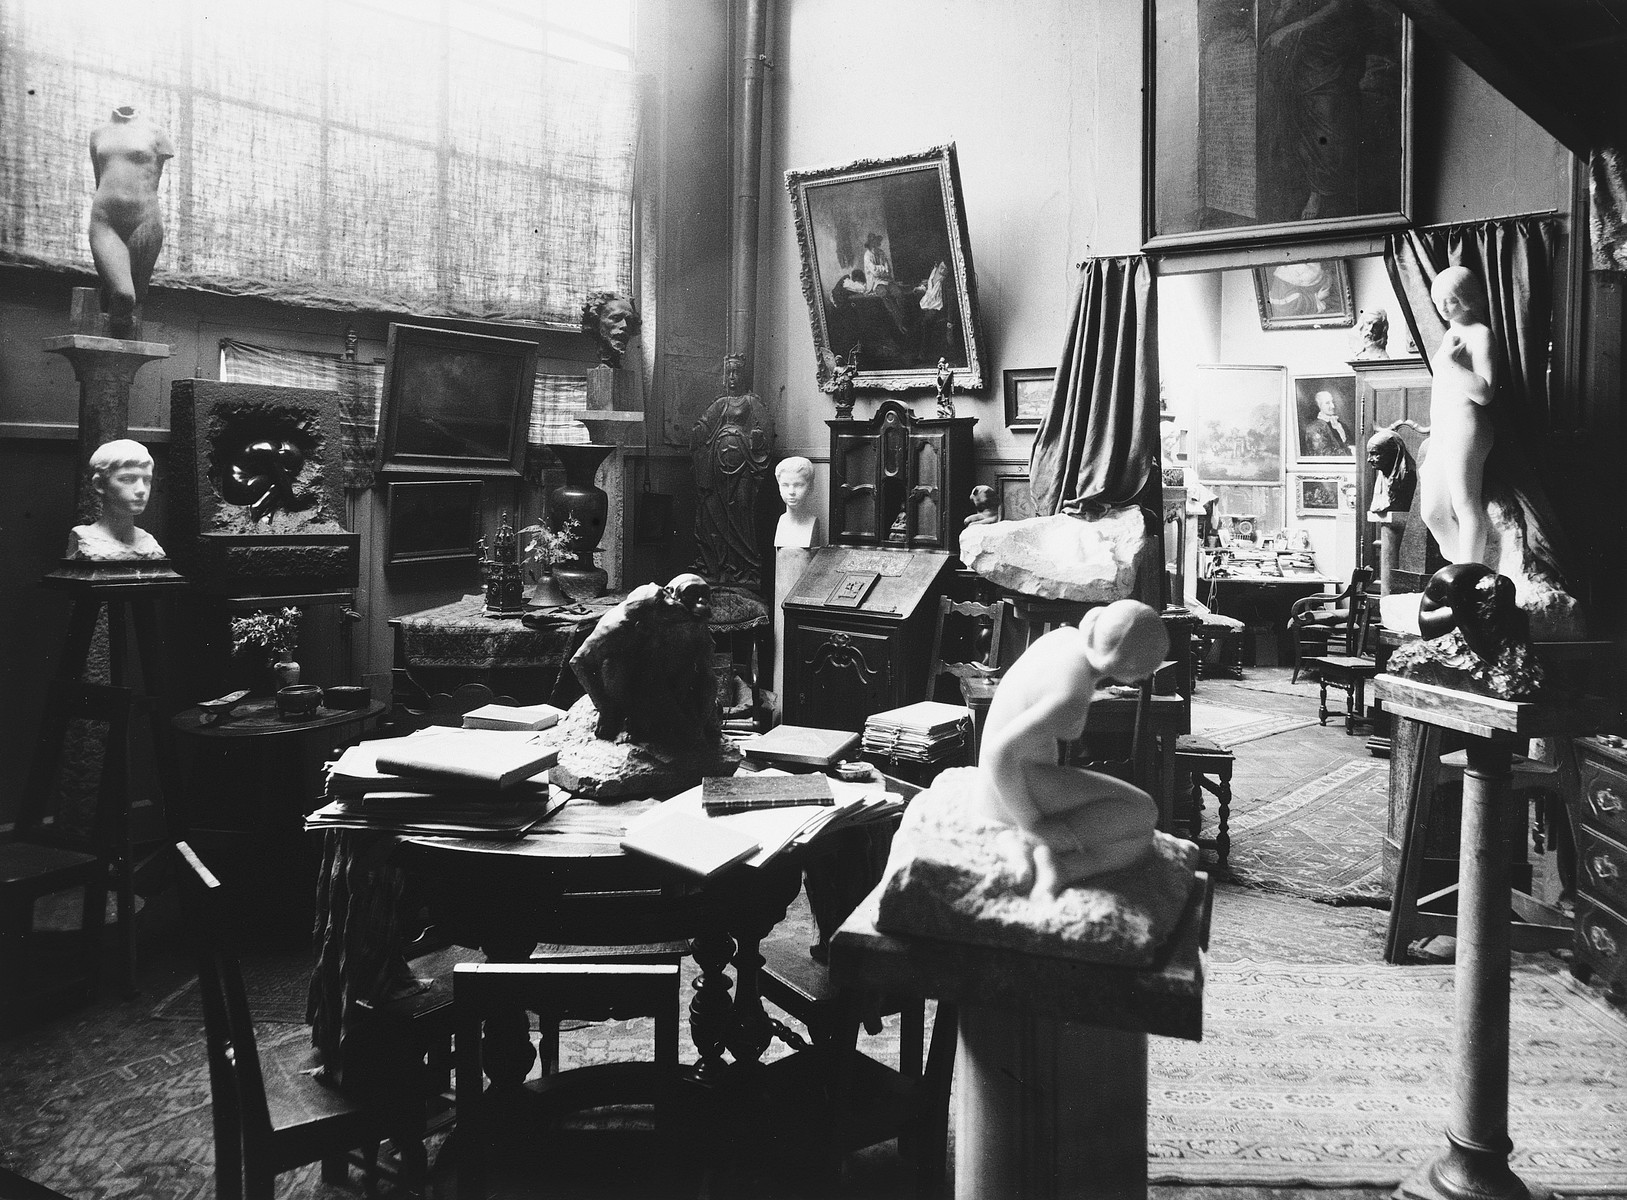 View of the studio of sculptor Naum Aronson.